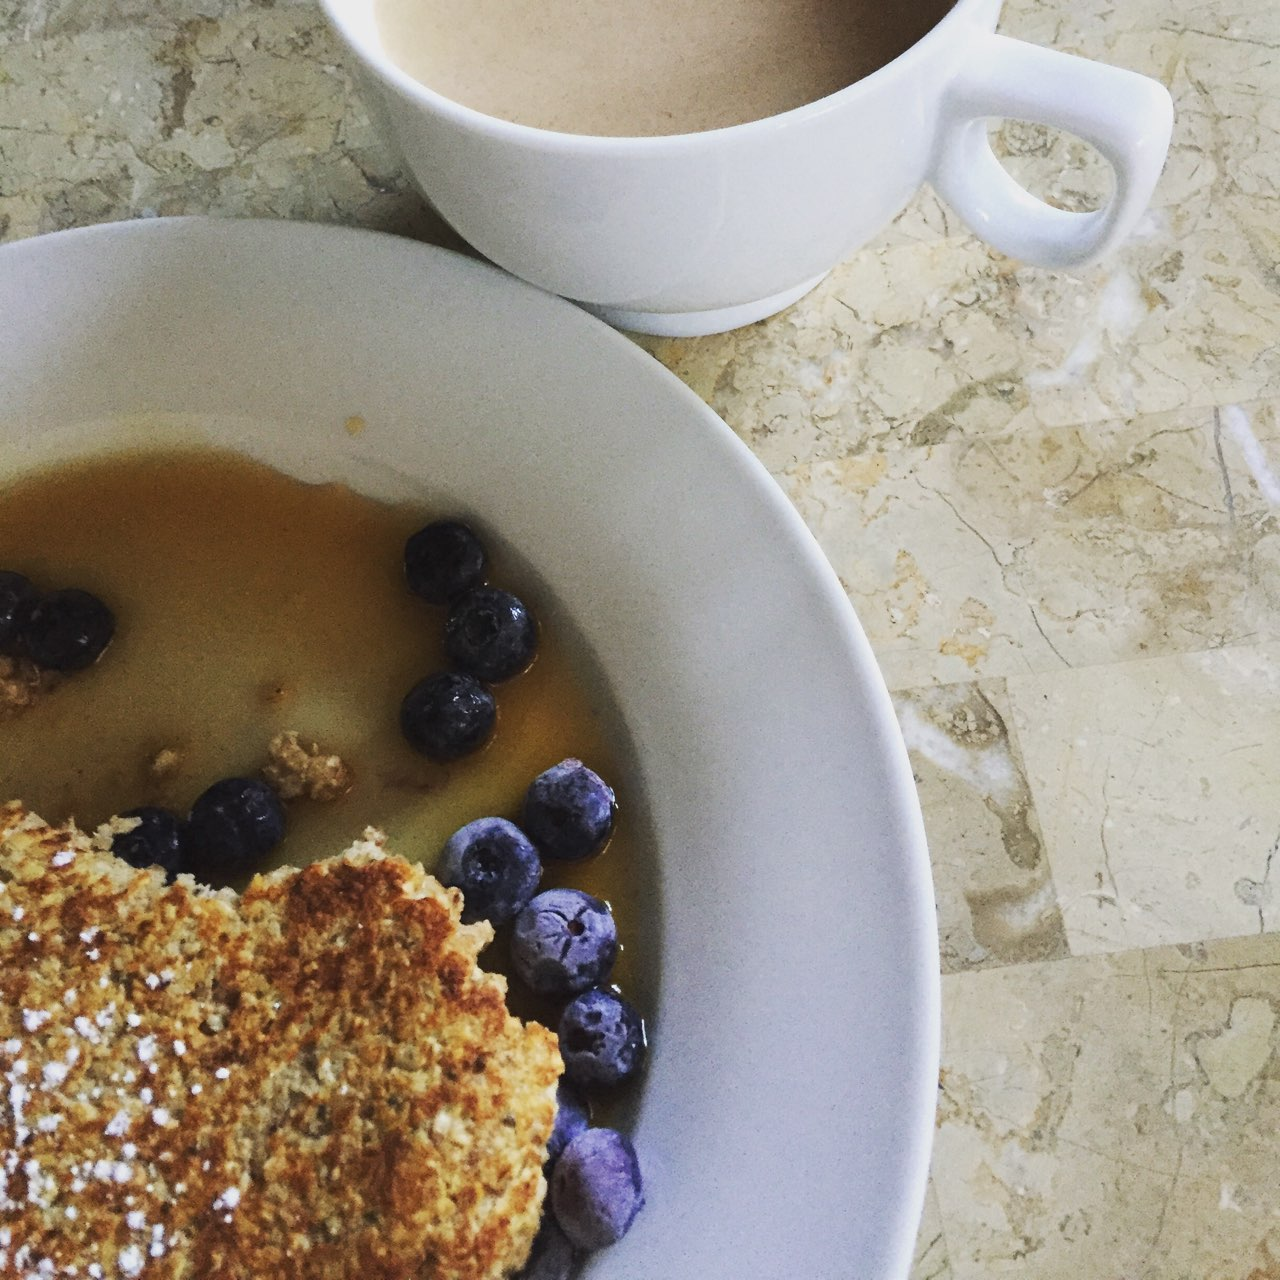 Are Market Pantry Old Fashioned Oats Gluten Free